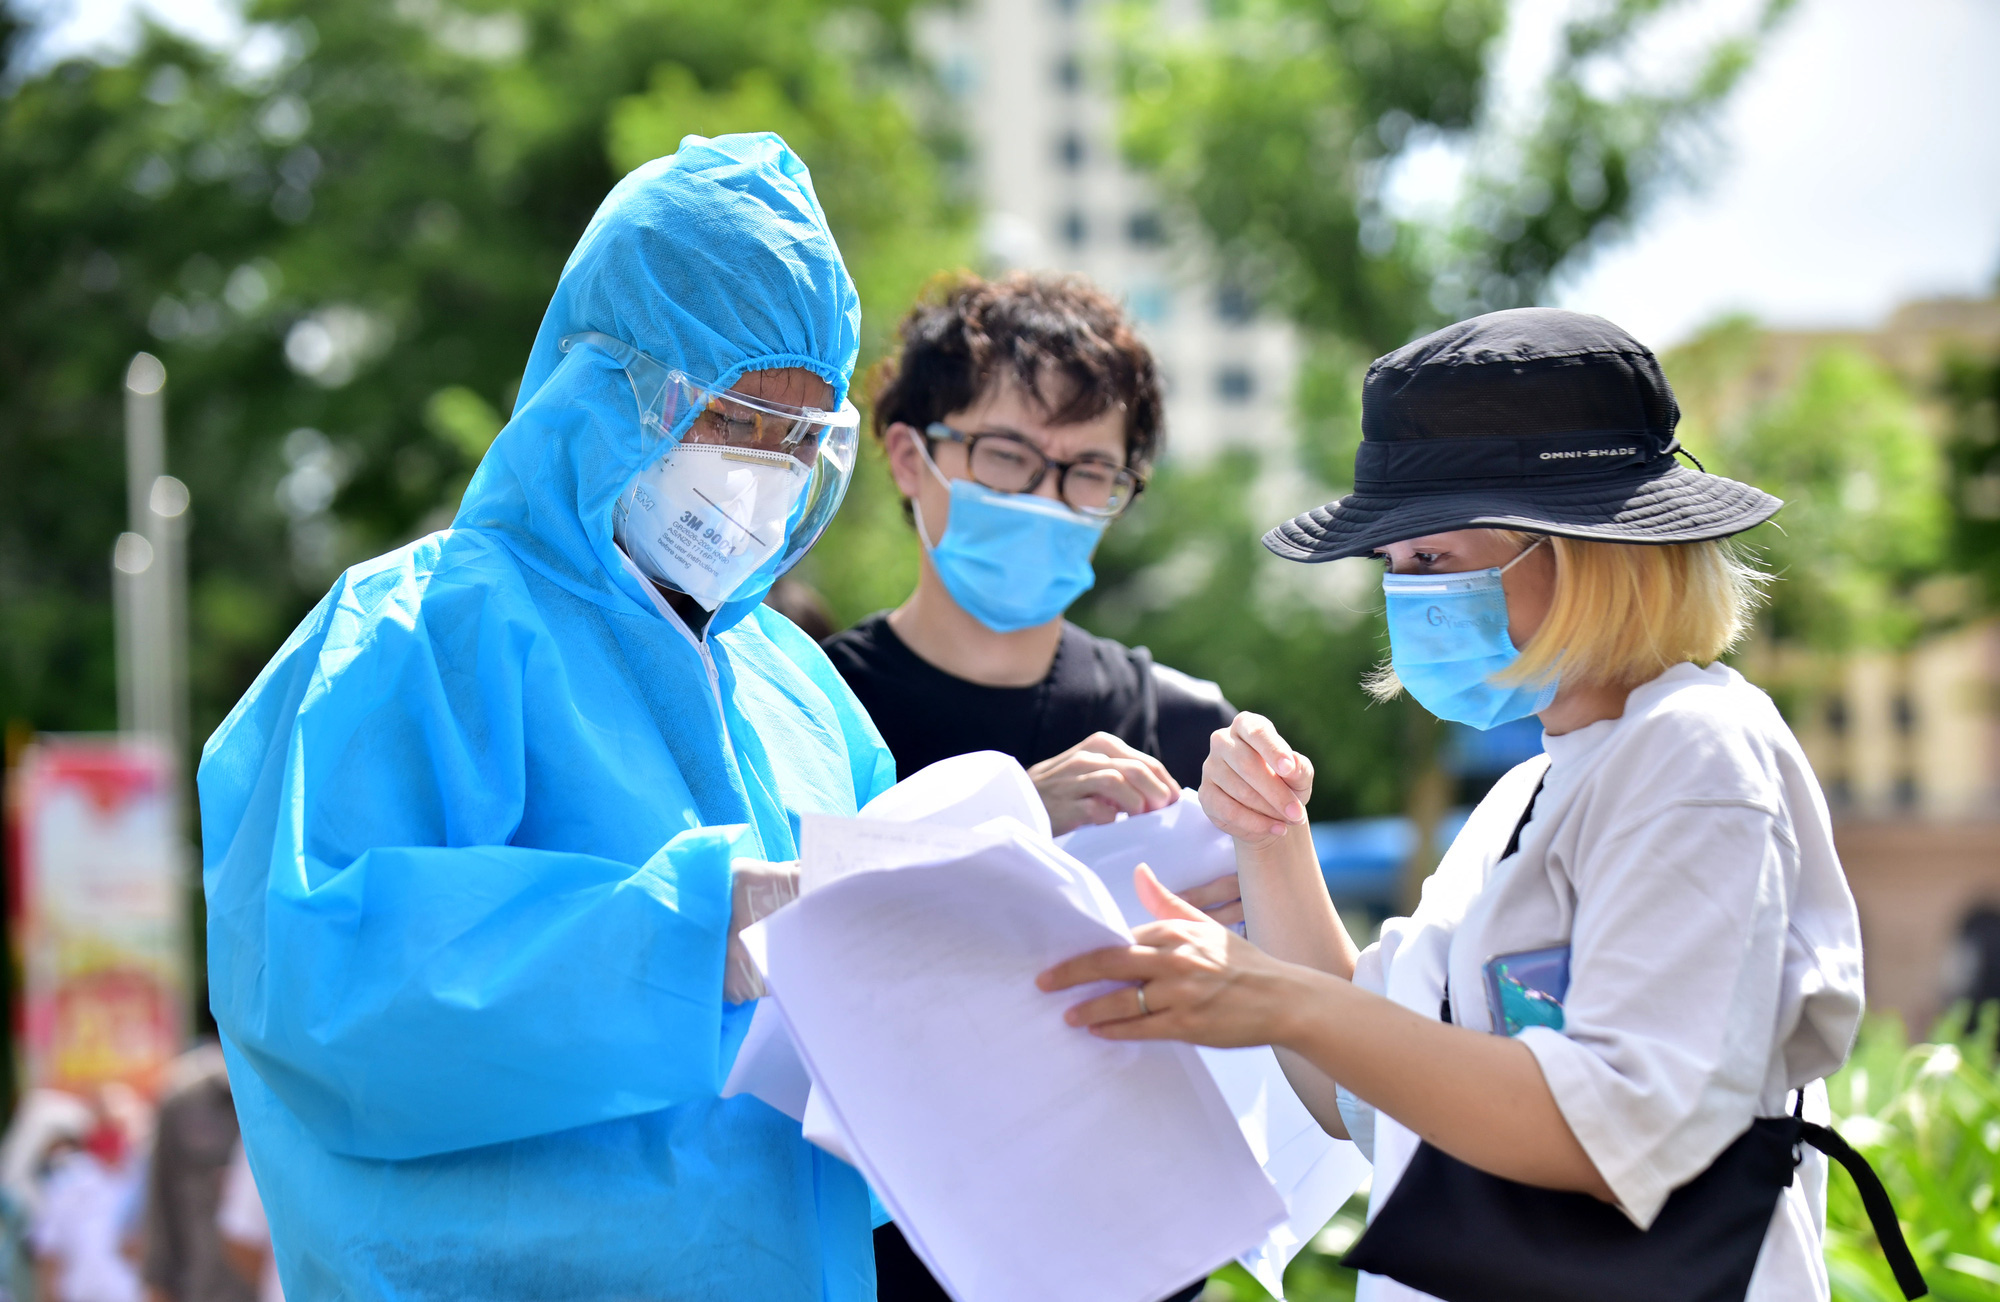 How can foreigners seek help during COVID-19 pandemic in Ho Chi Minh City?